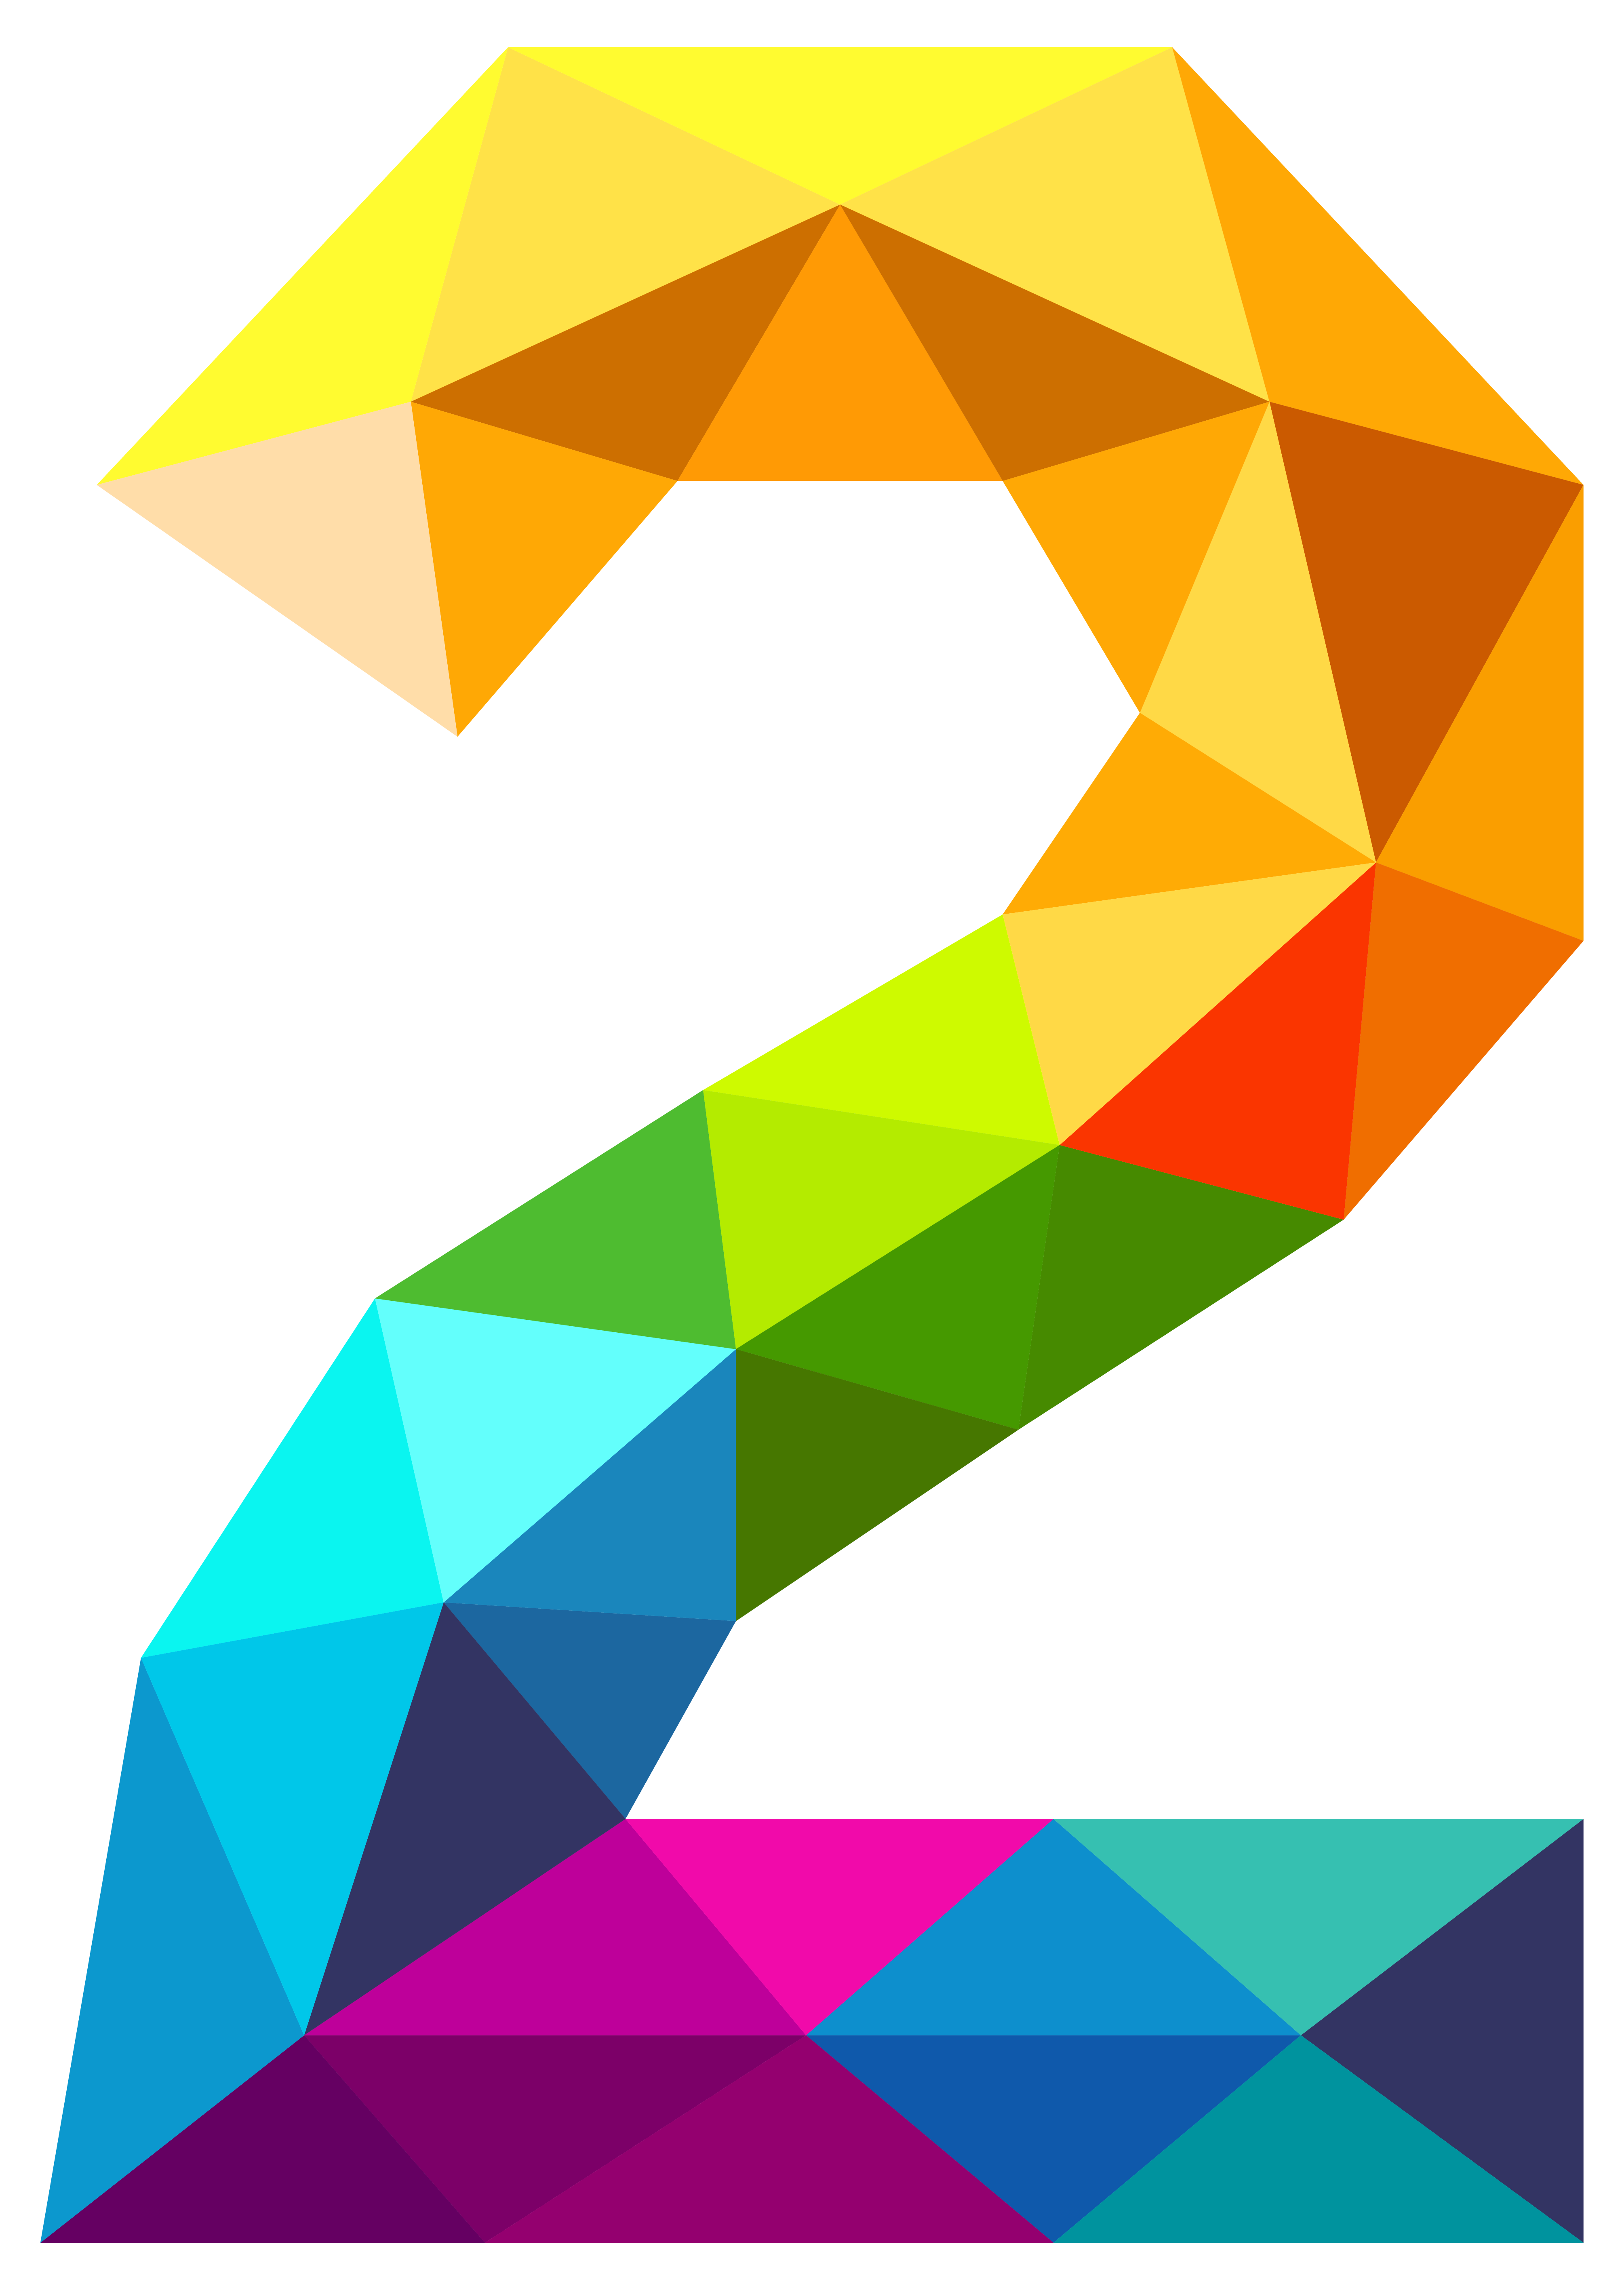 colourful triangles number two png clipart image abcdarios rh pinterest com numbers clipart 1 - 100 numbers clipart 1 - 100